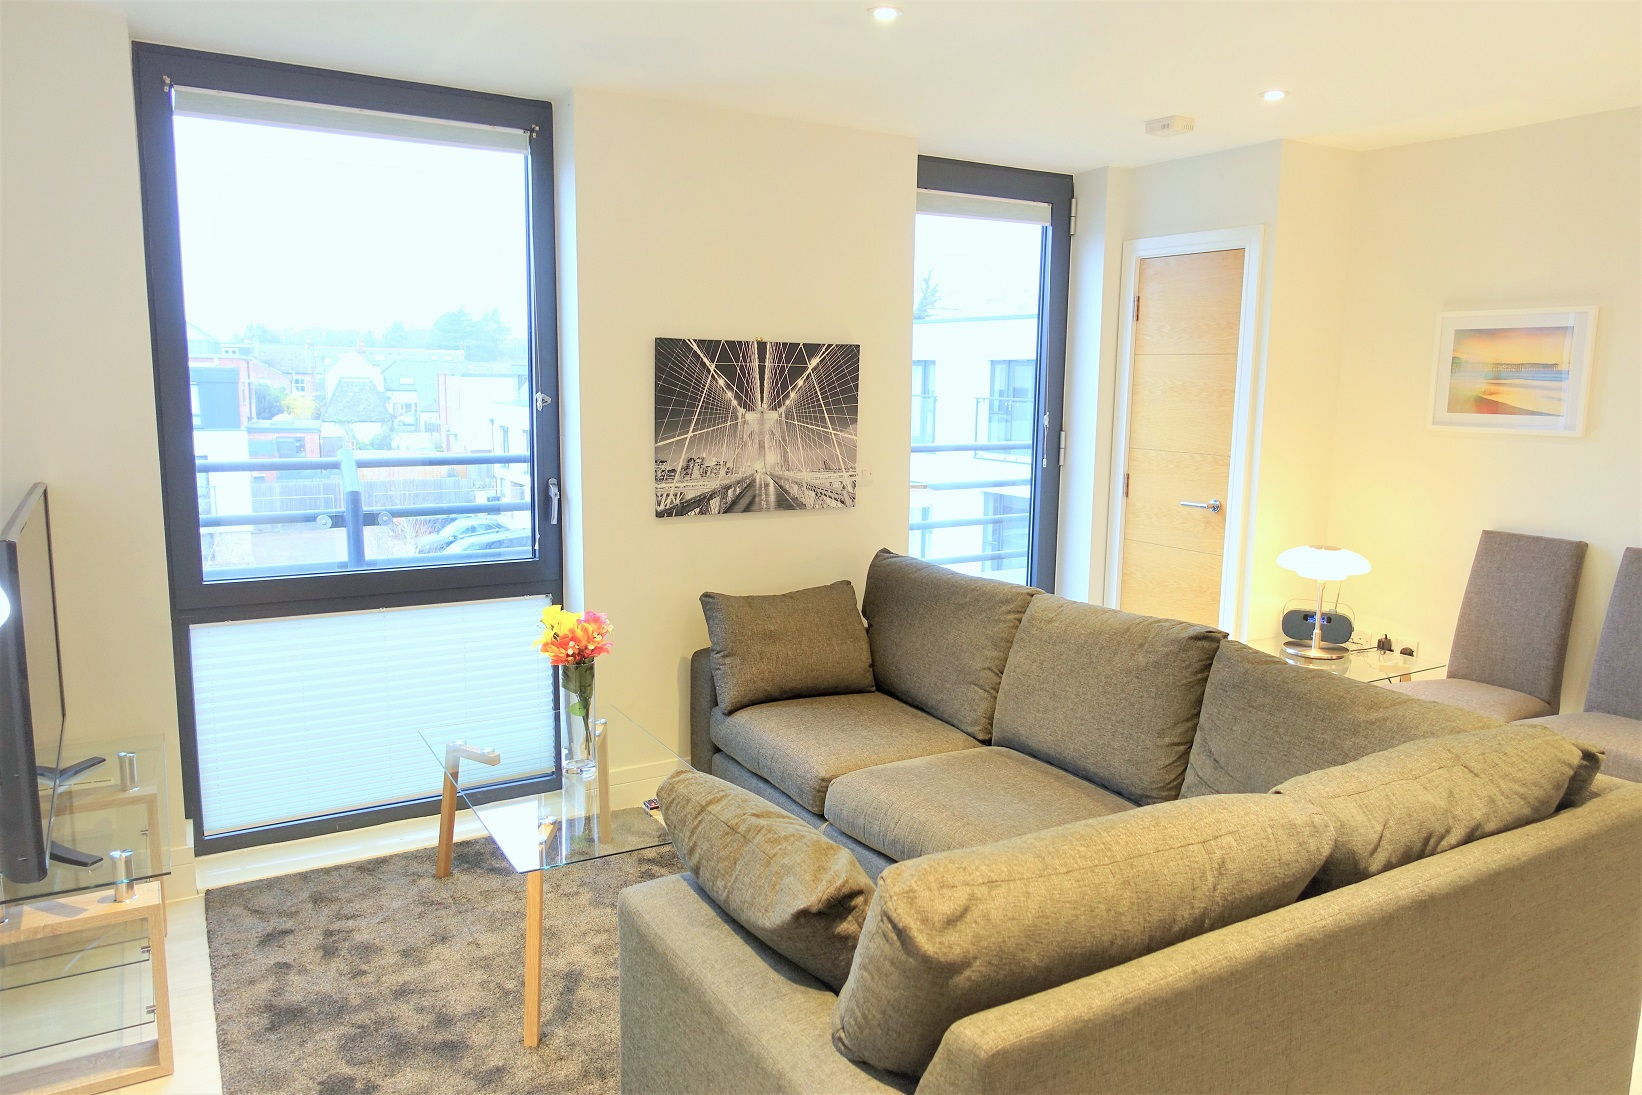 Bright living space at Teddington Apartments, Teddington, London - Citybase Apartments